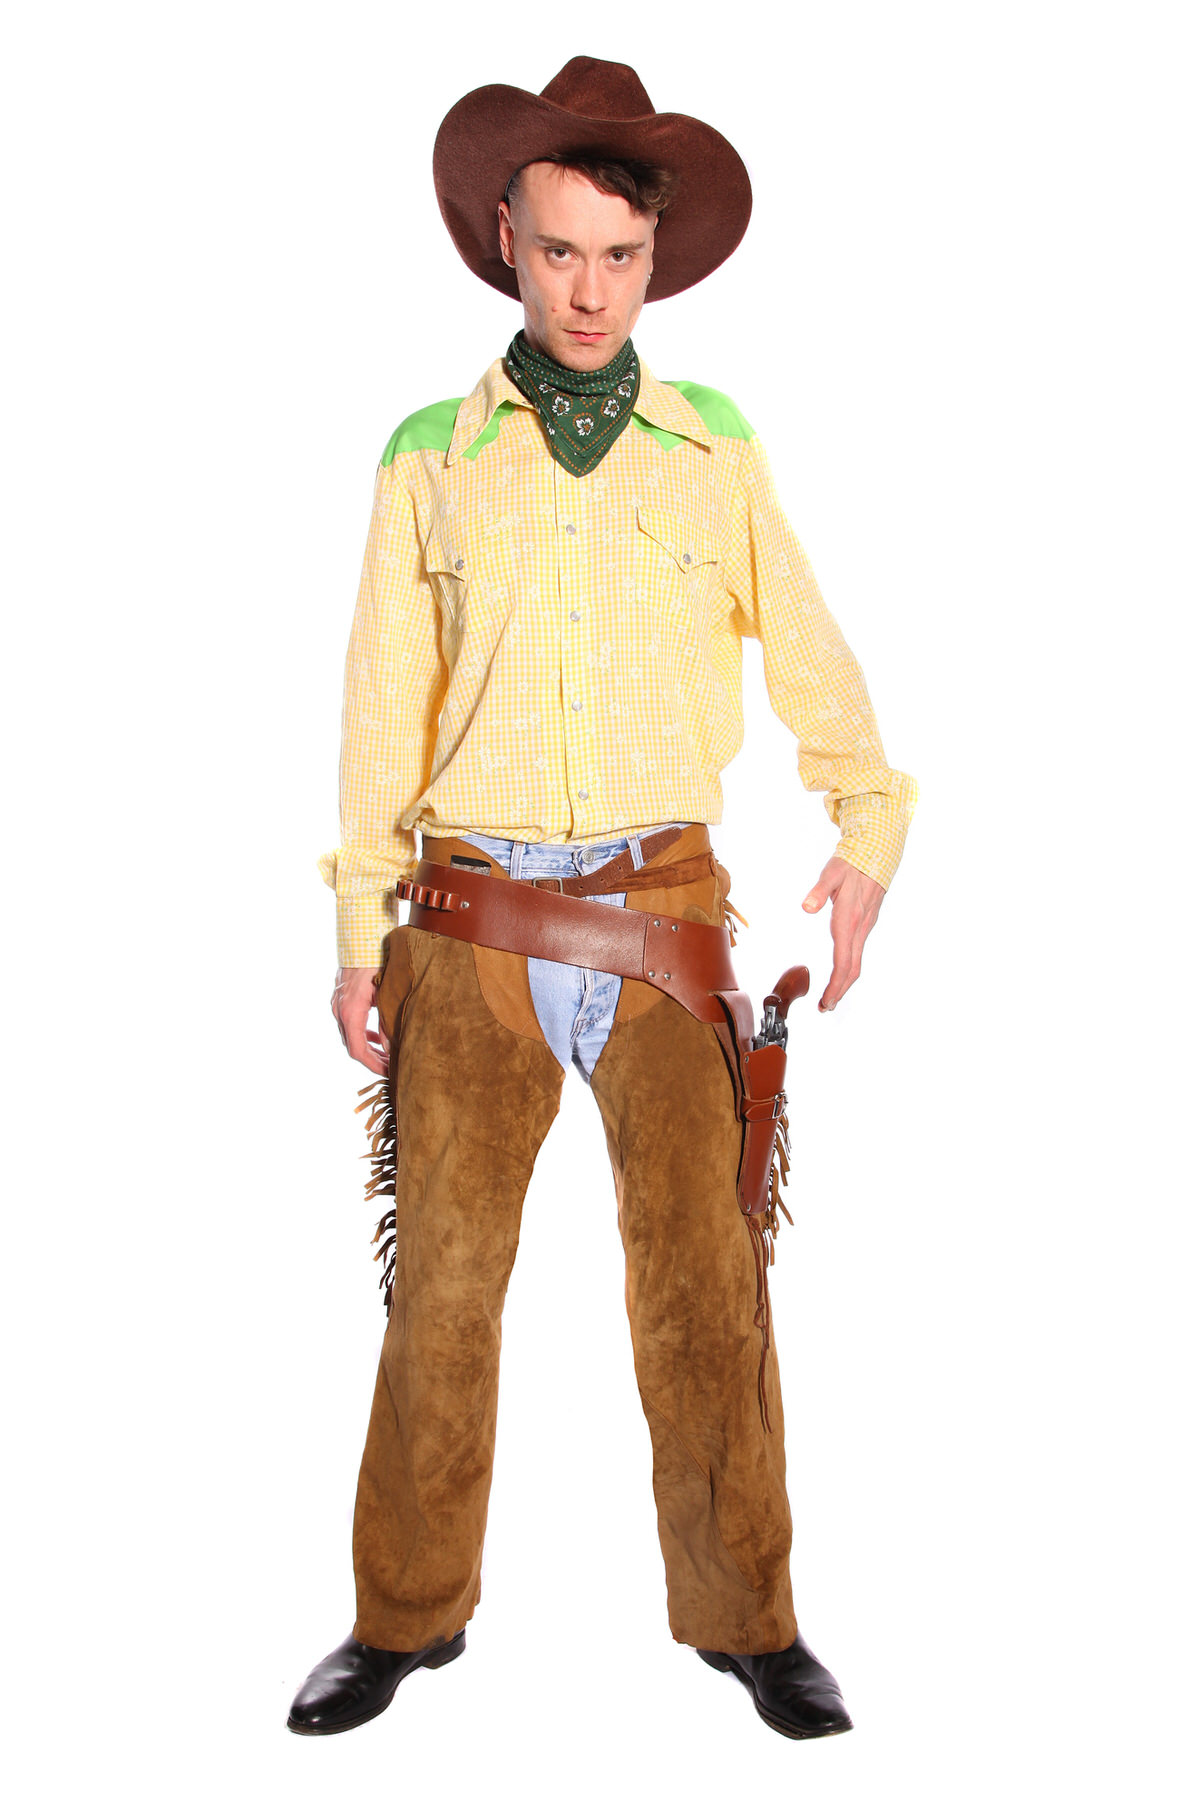 COWBOY YELLOW AND BROWN COSTUME W SUEDE CHAPS